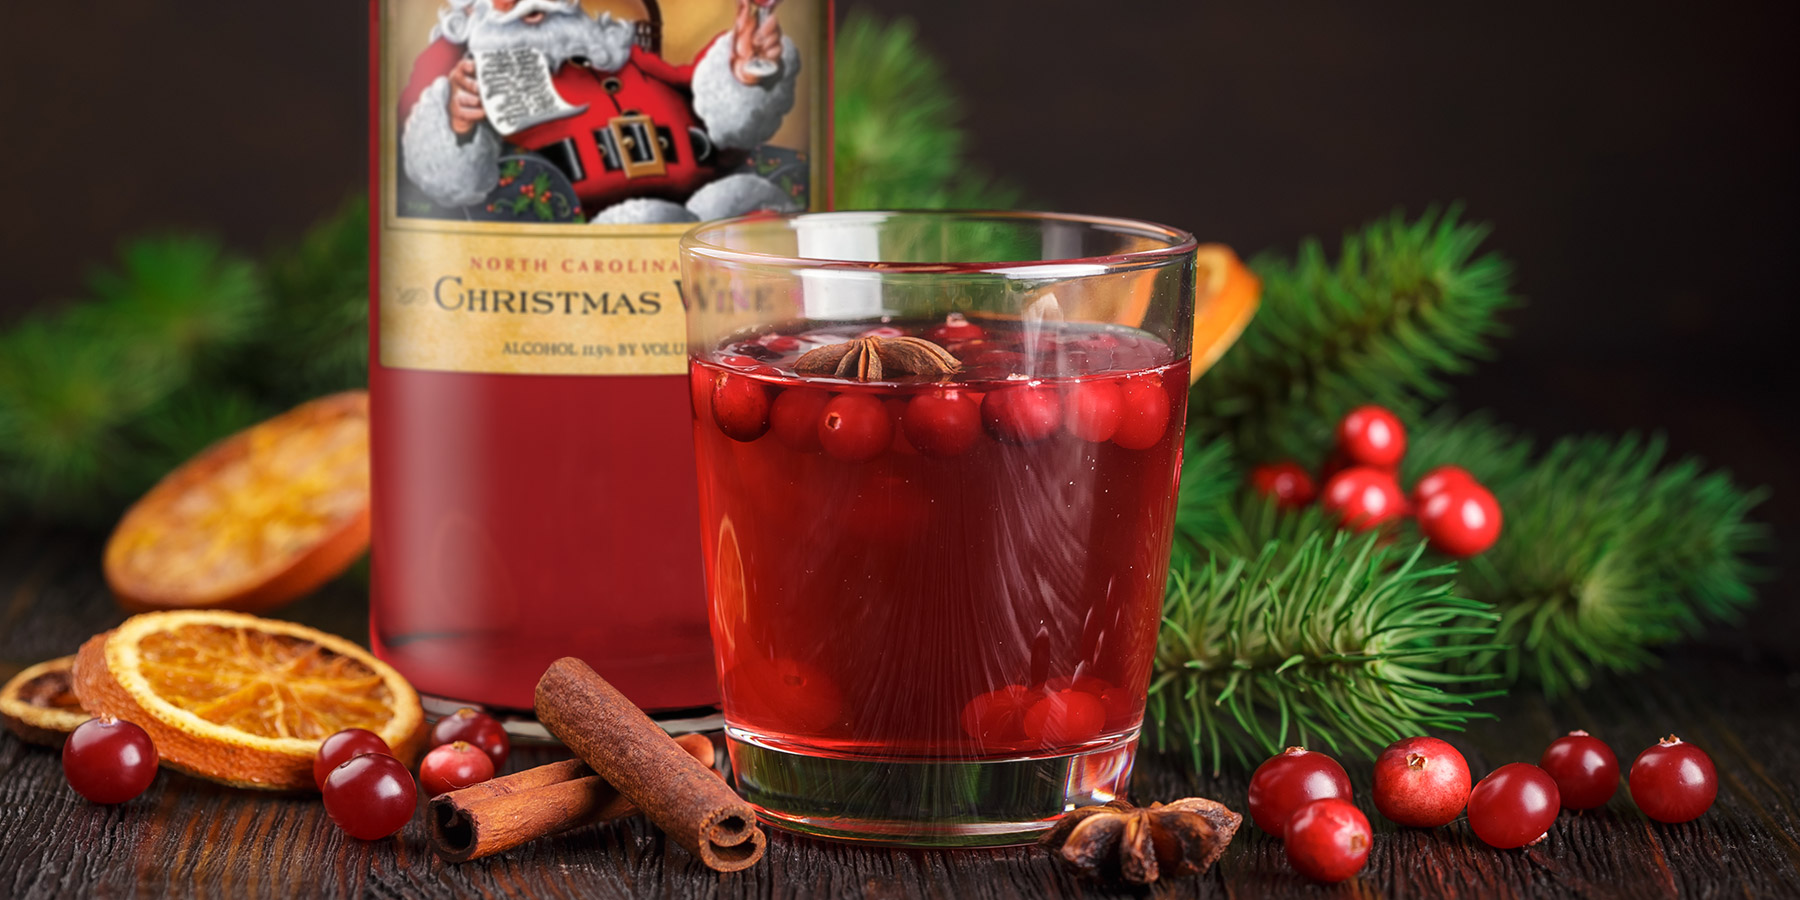 Duplin red Christmas Wine adds berry sweetness to tangy pineapple juice and snappy ginger ale in this blend named Ronnie's Christmas Red Punch.